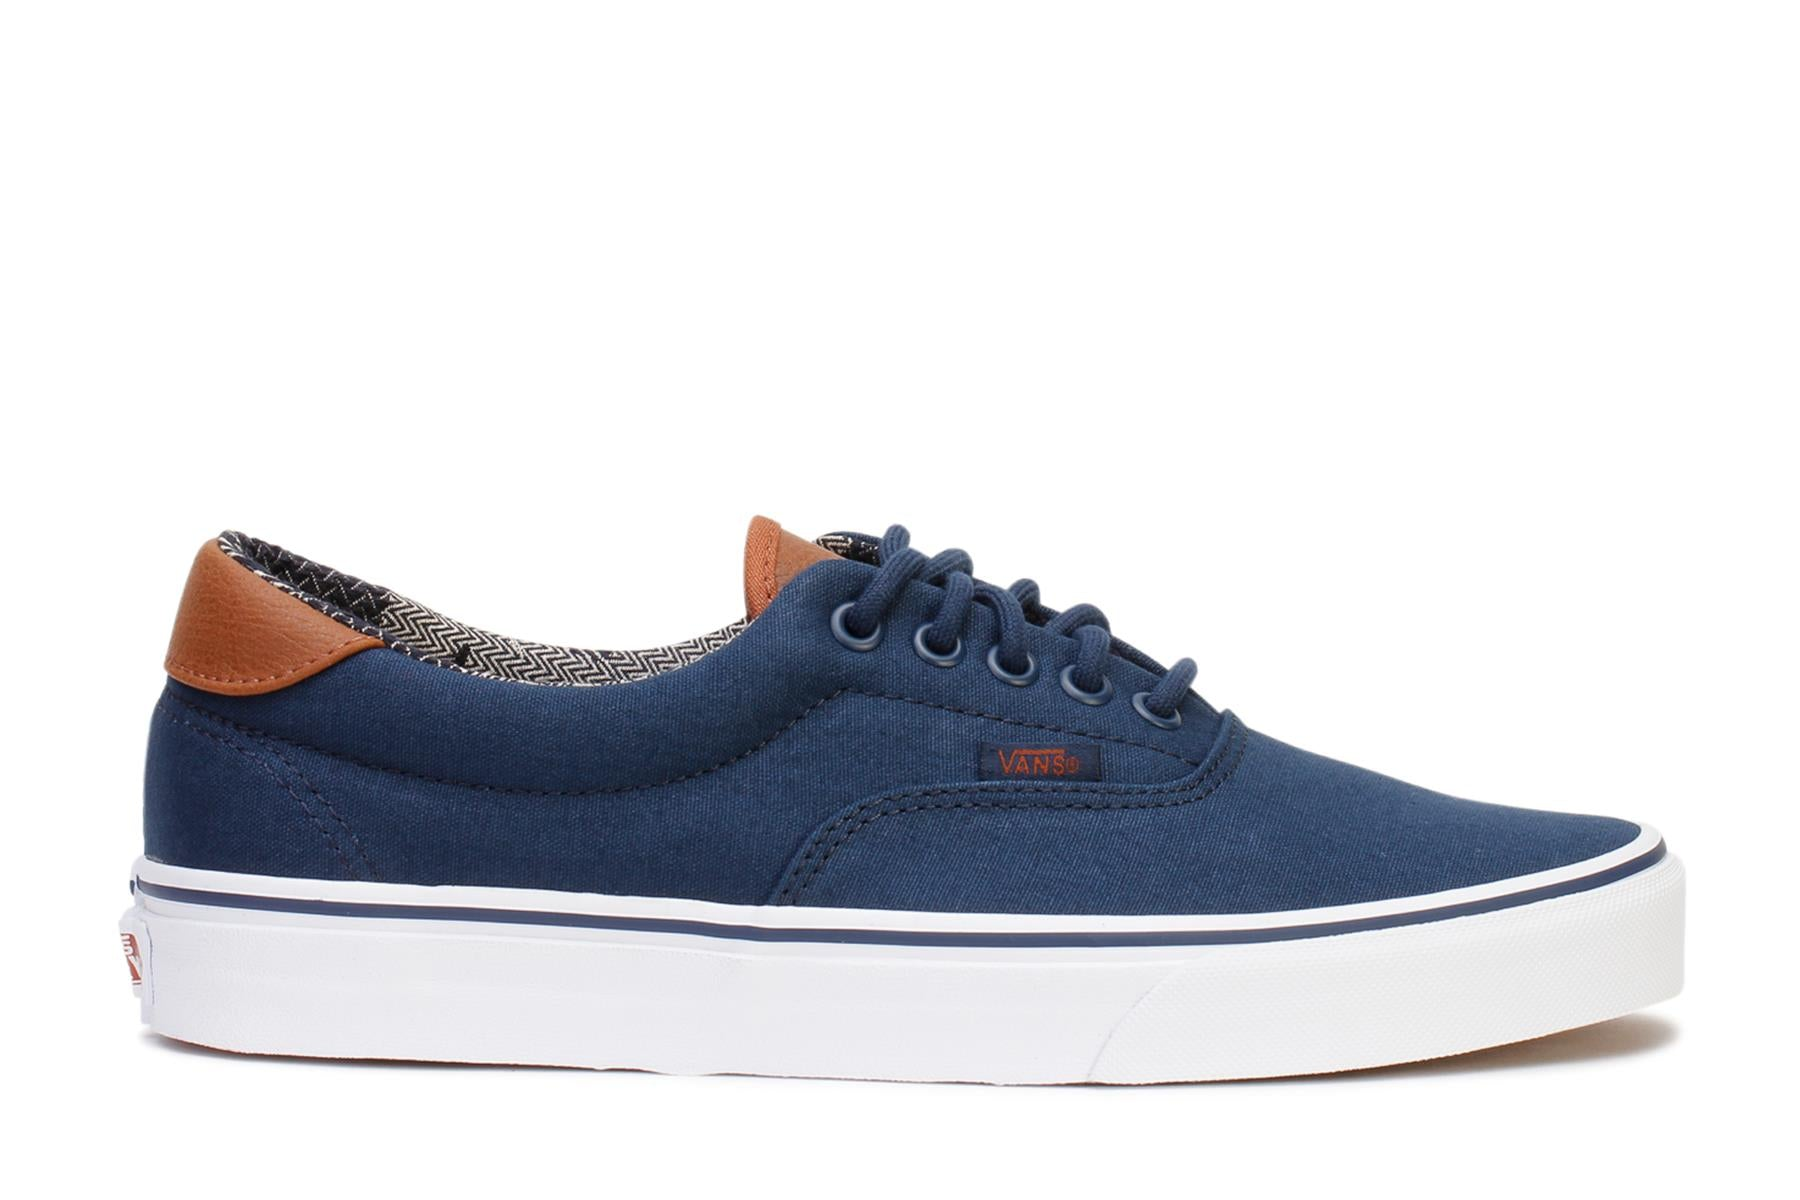 Vans Mens Casual Sneakers Era 59 Dress Blues Material Mix VN0A38FSMVE